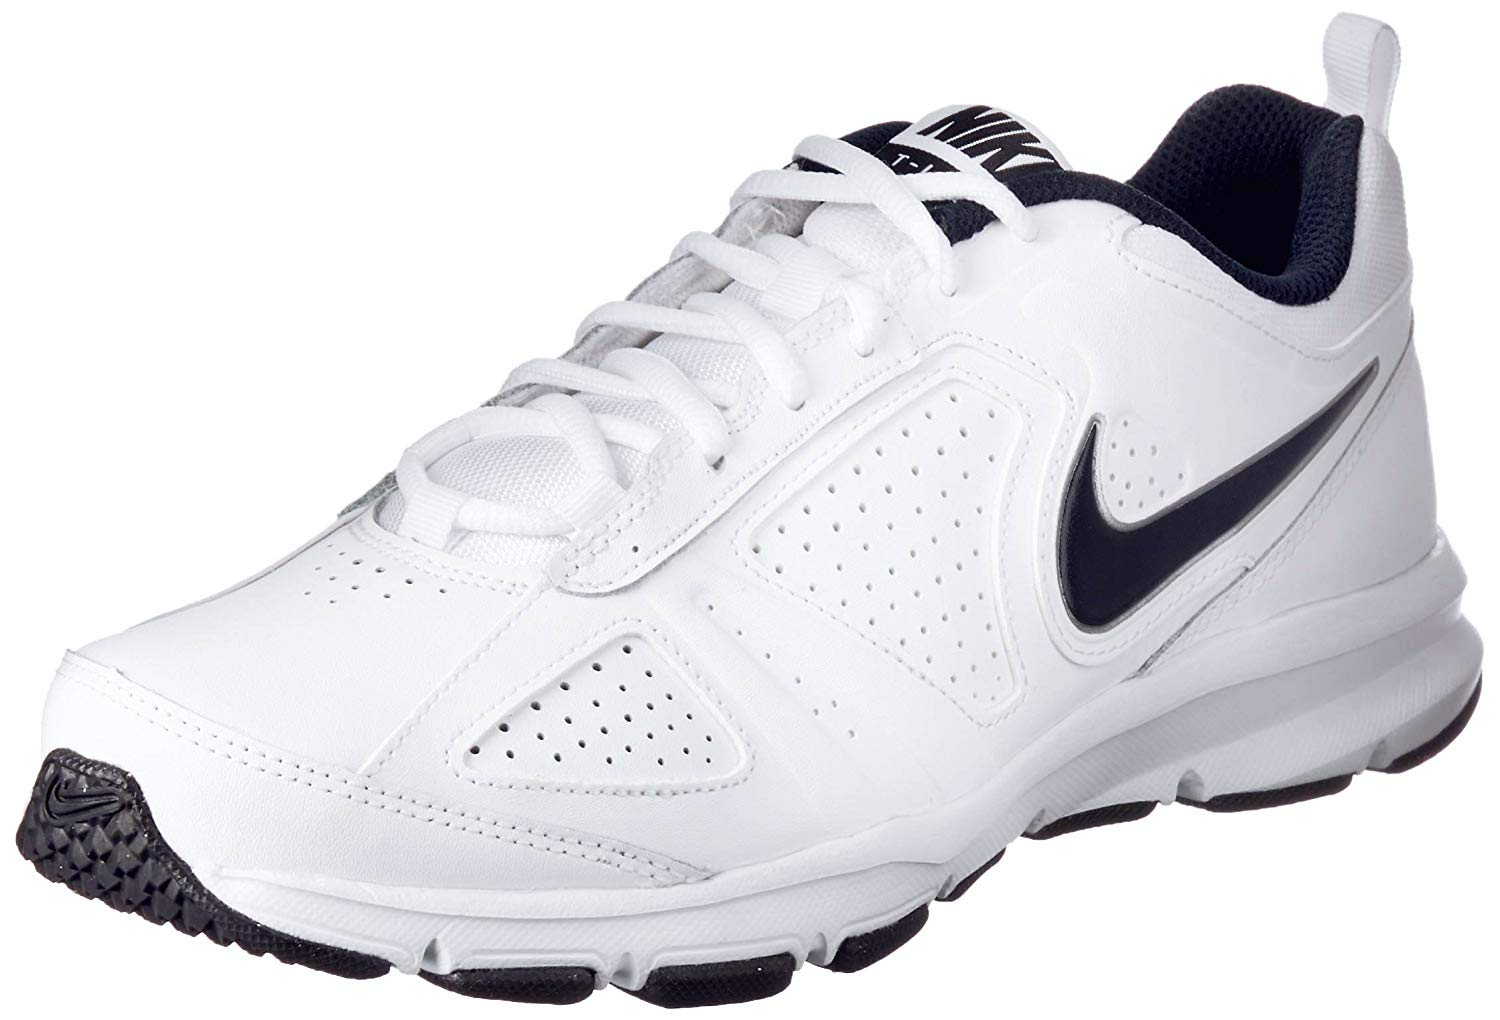 Nike T-Lite 11, Zapatillas de Cross Training para Hombre, Blanco (White/Black/Obsidian), 42.5 EU: Nike: Amazon.es: Deportes y aire libre